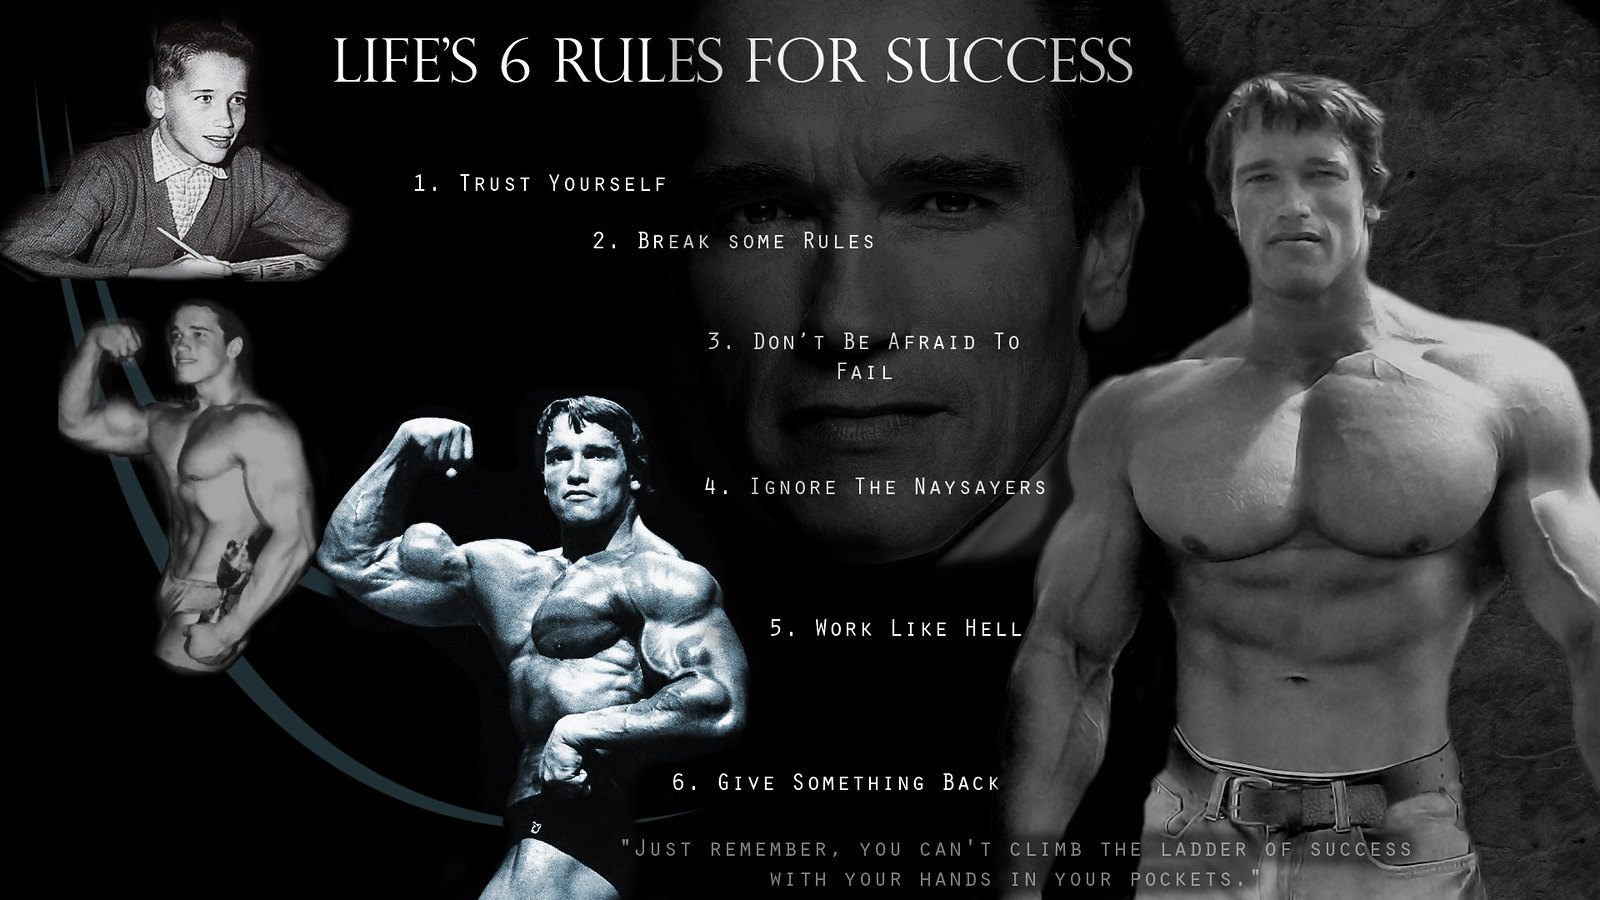 Arnold Motivational Wallpapers: Most Motivational Wallpapers